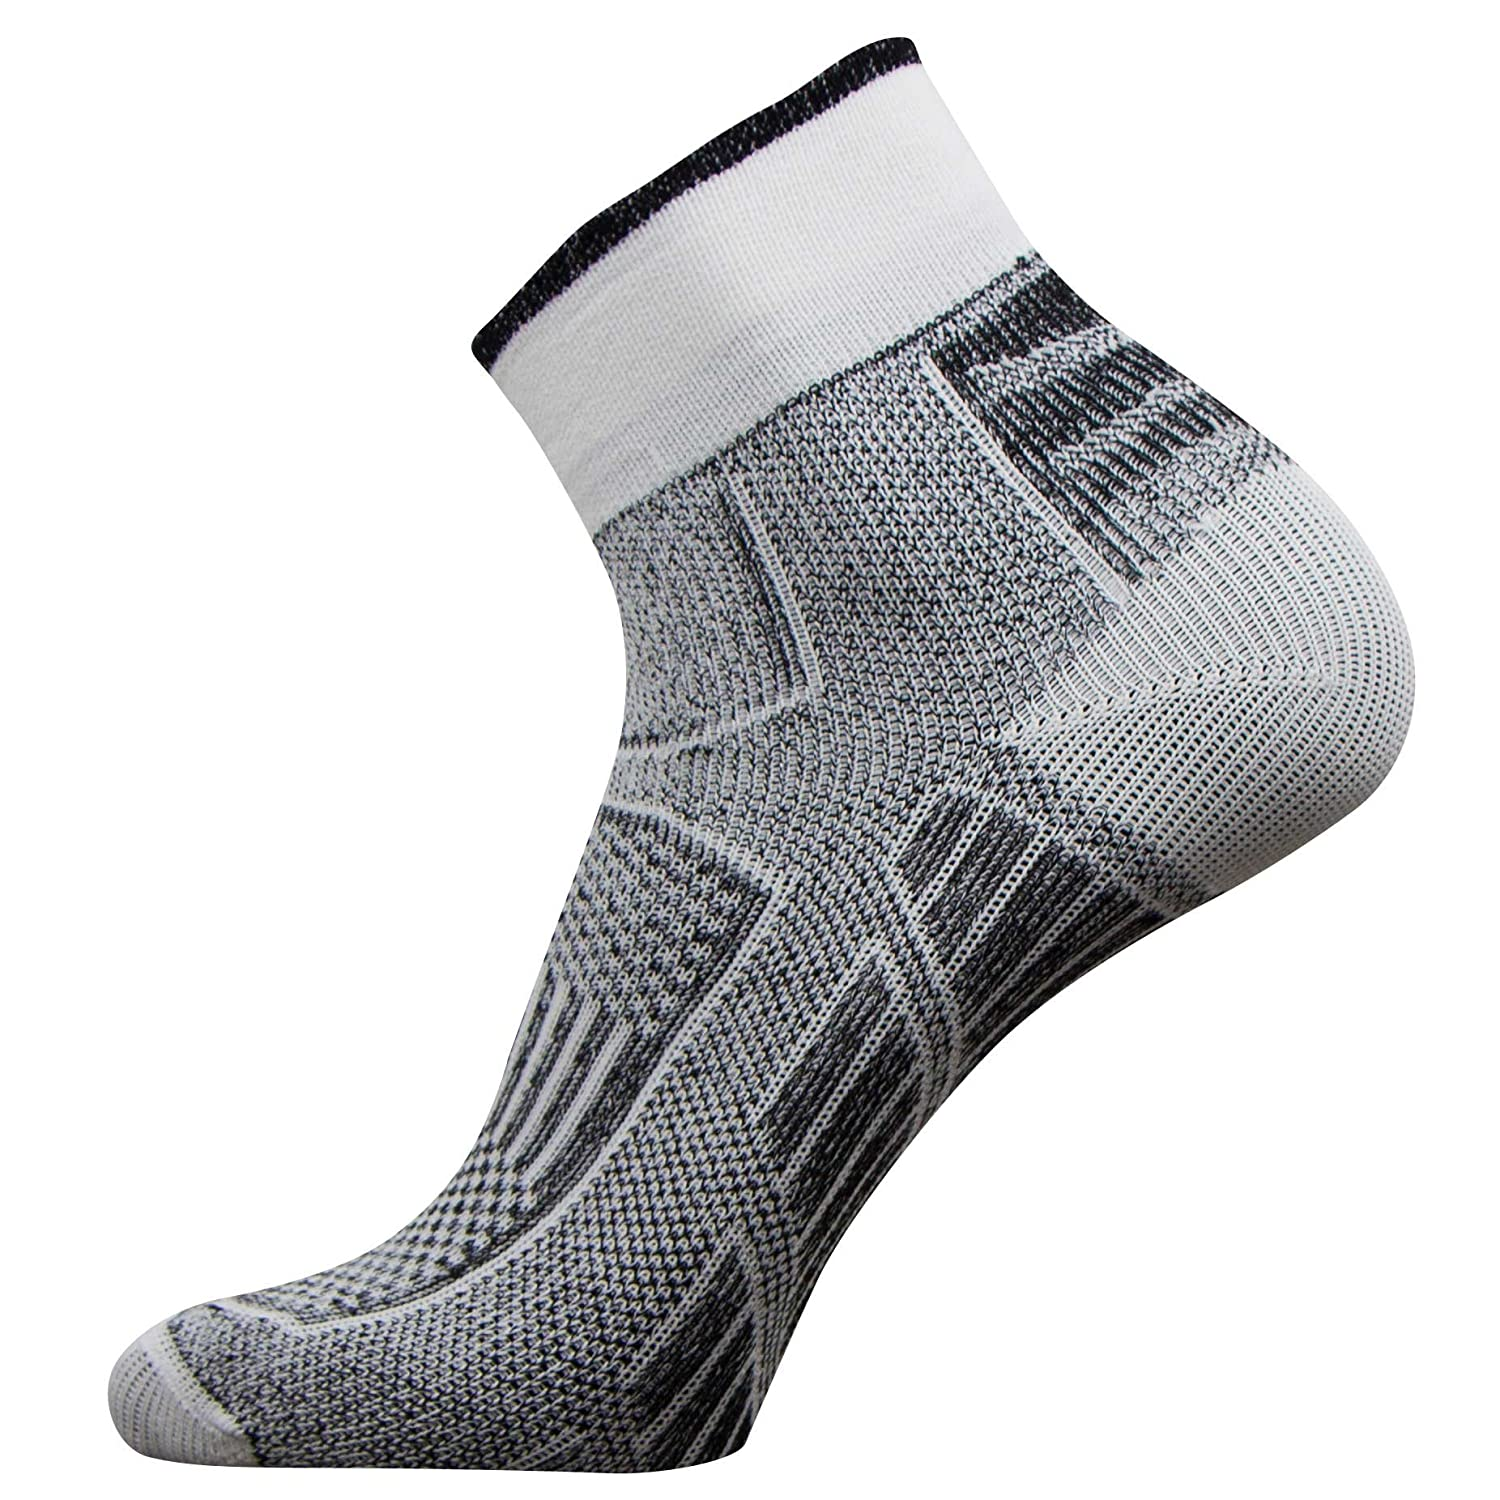 comfortable beauty sock inexplicable he extras have the high fashion knows cotton in feet indybest skull may comforter s men this independent even corgi best drawer sweaty his design knee socks most and crossbones warm who accessories mens